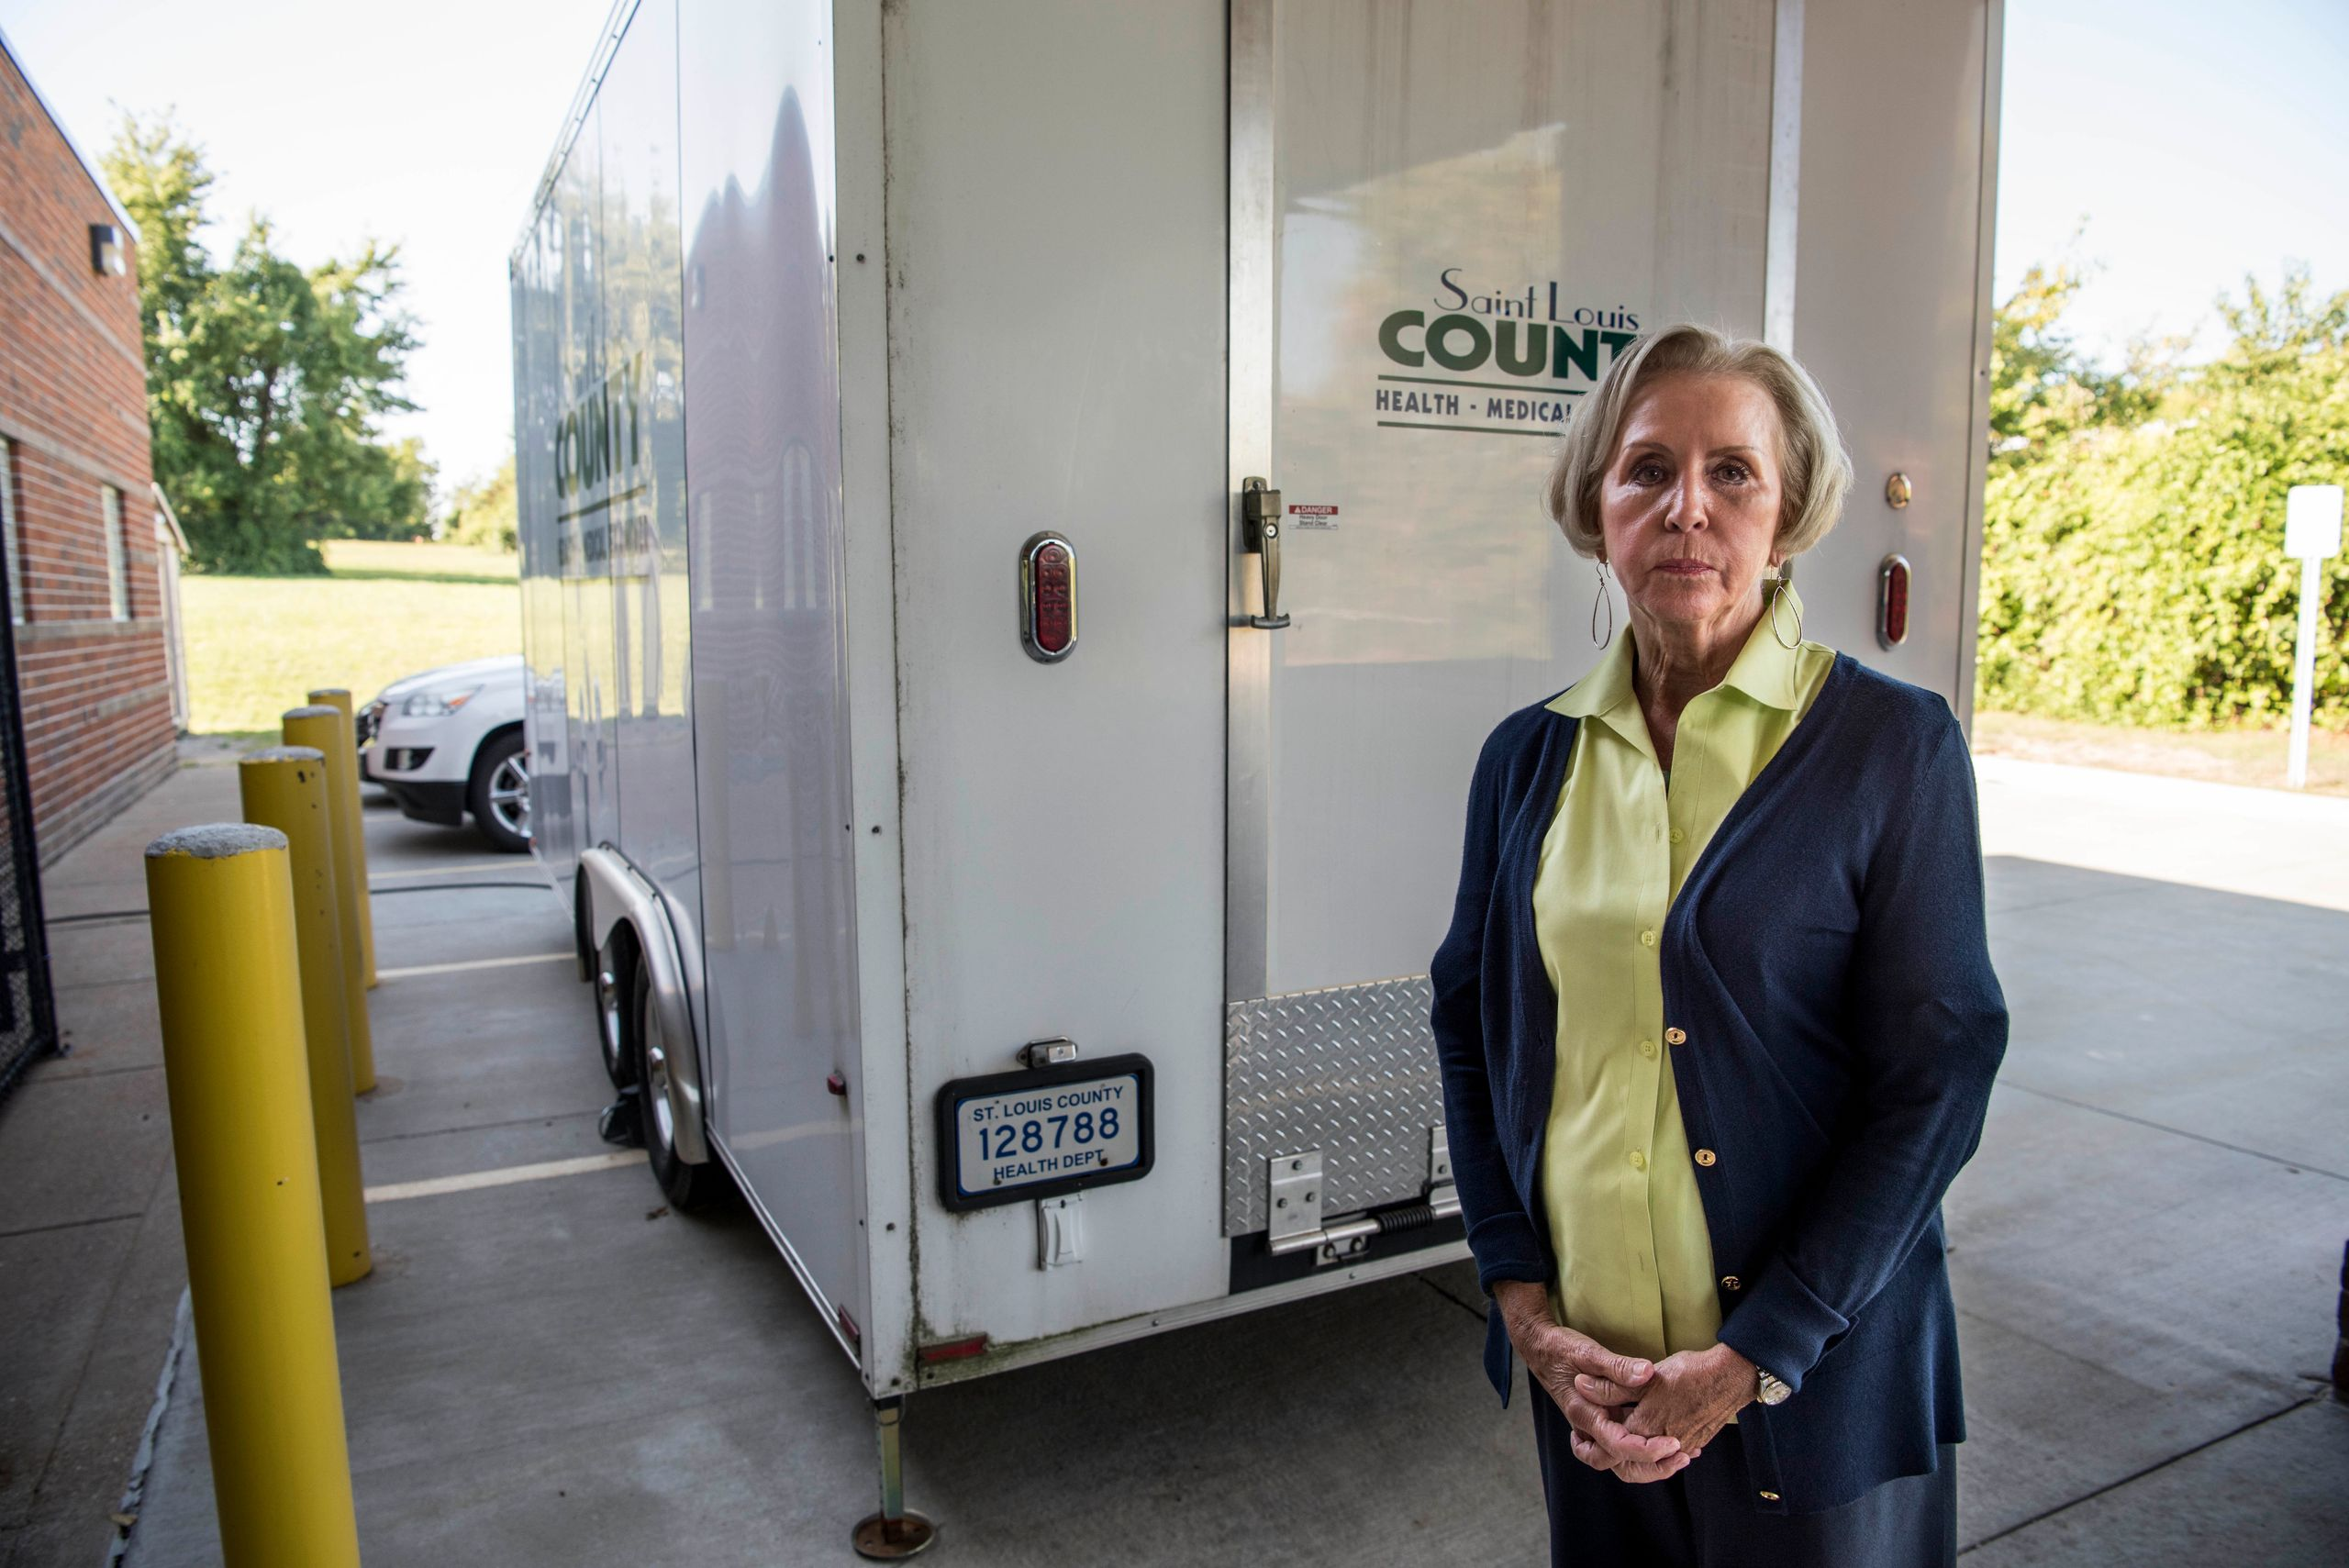 Dr. Mary E. Case, the chief medical examiner in St. Louis County, started using a portable refrigerated morgue -- which is de